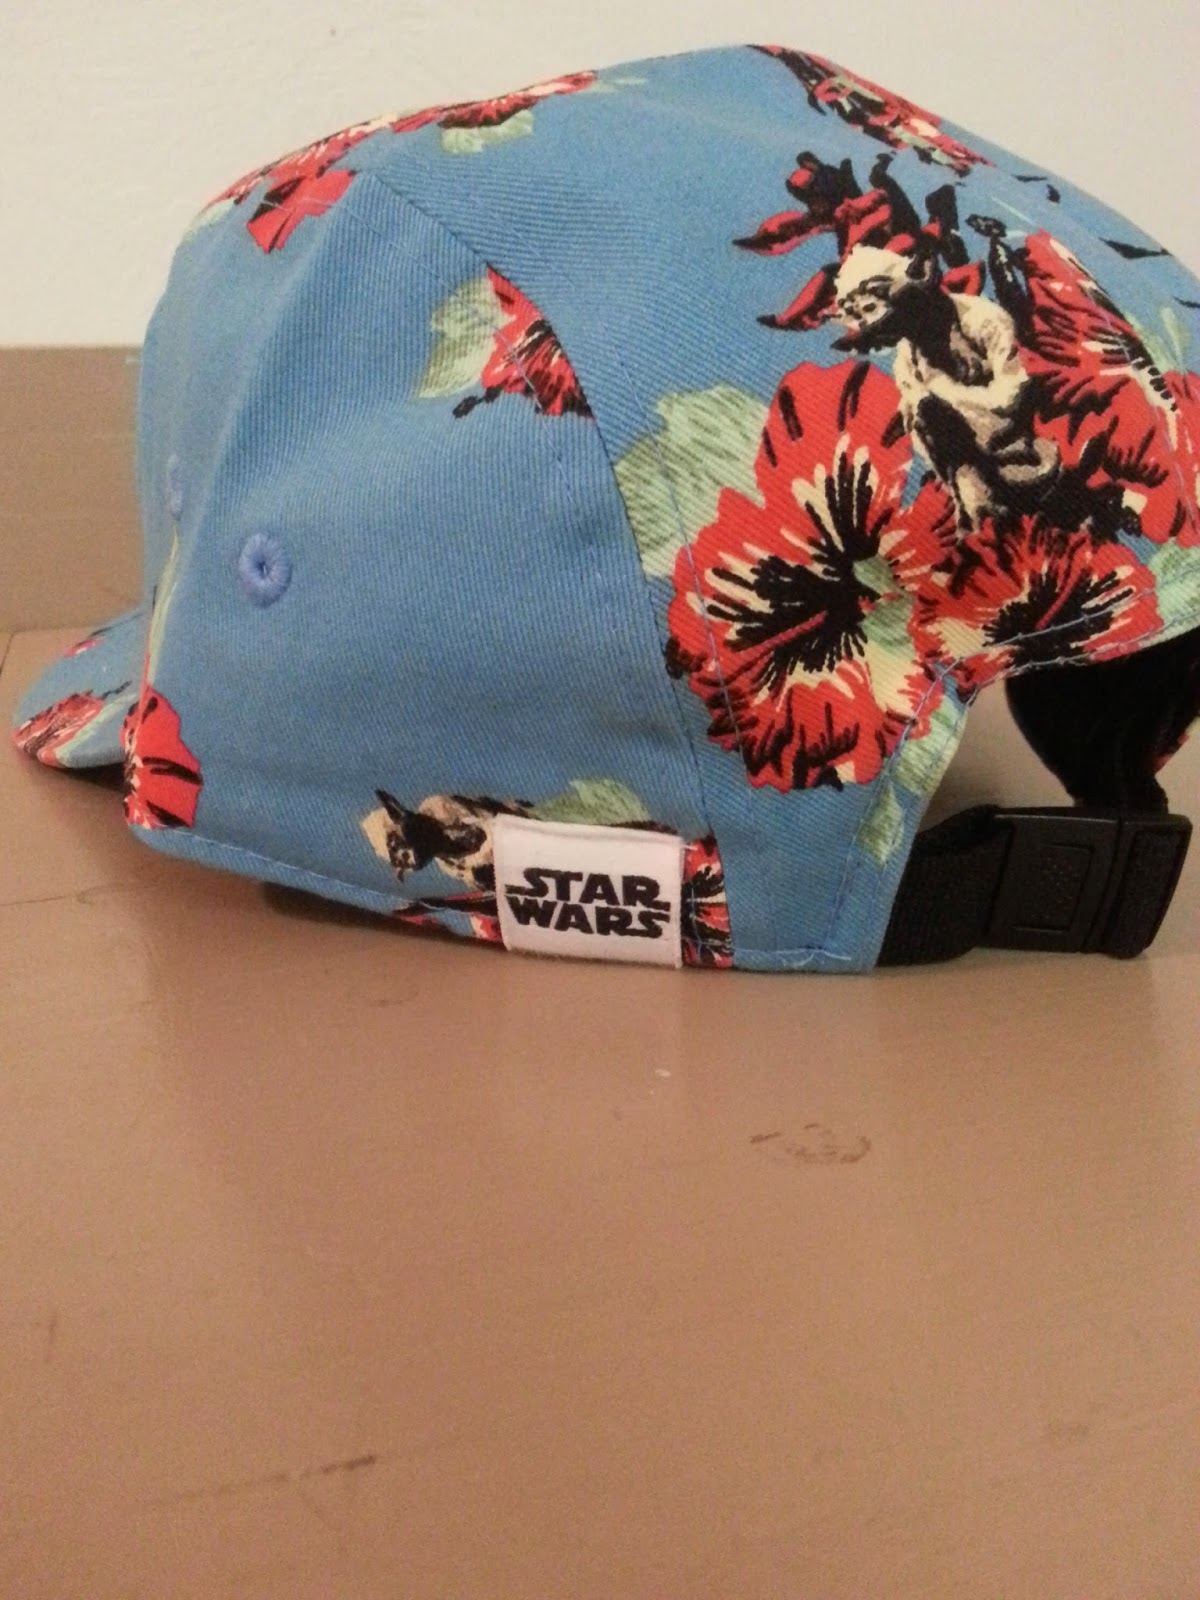 d9e7ae2a9a The adjustable hat is blue with a leather Vans logo patch on the front and  a Star Wars tag on the back.You can find it at Vans stores